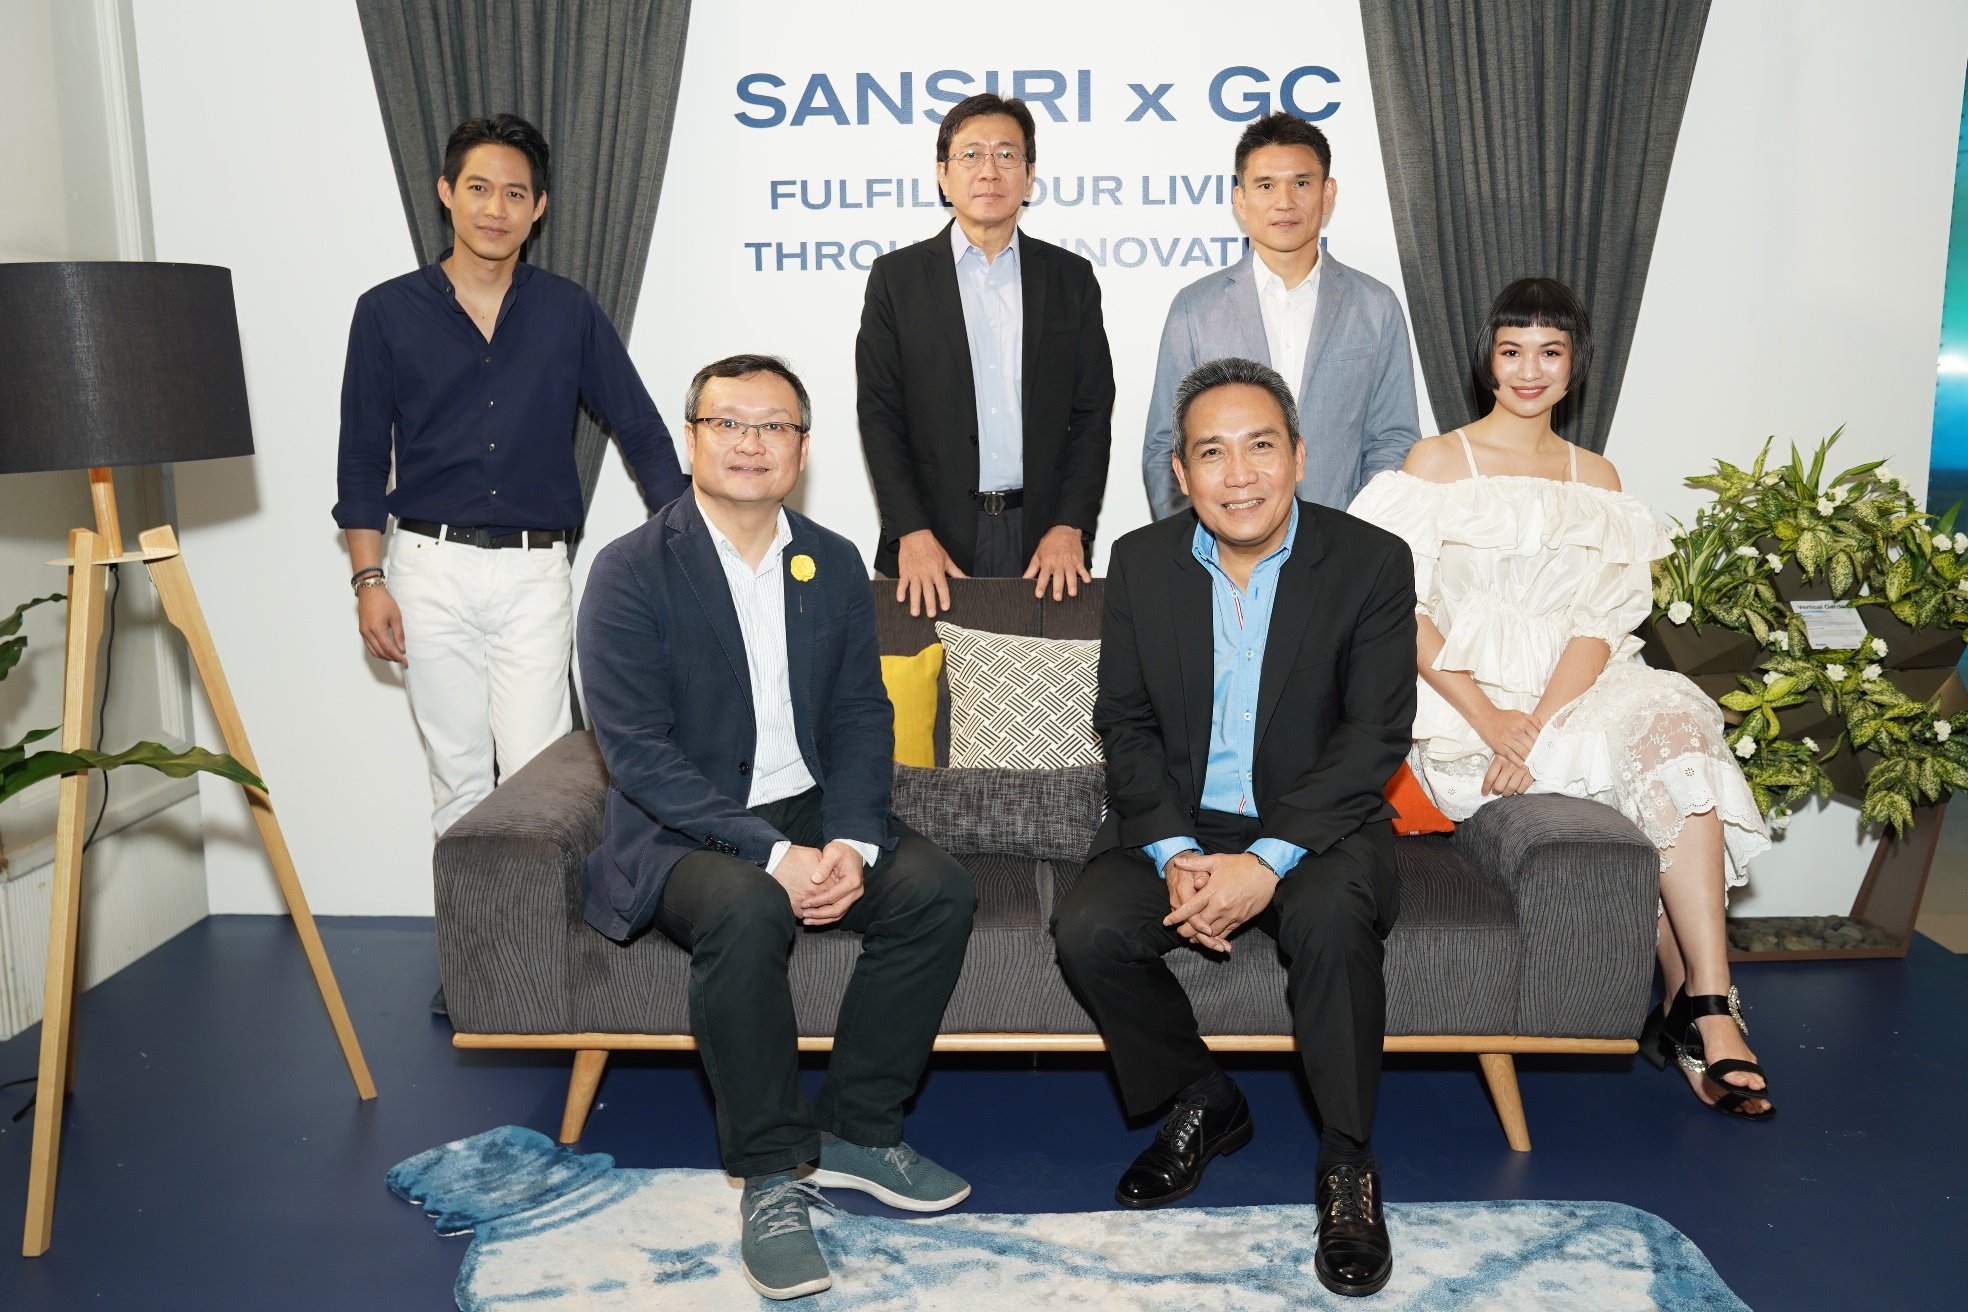 SANSIRI x GC INVITE THAIS TO BE MORE SUSTAINABLE  WITH THE CREATION OF ENVIRONMENTALLY-FRIENDLY FURNITURE  UNDER PARTNERSHIP WITH SB FURNITURE AND PASAYA;  TO BE DISPLAYED IN SANSIRI RESIDENCES